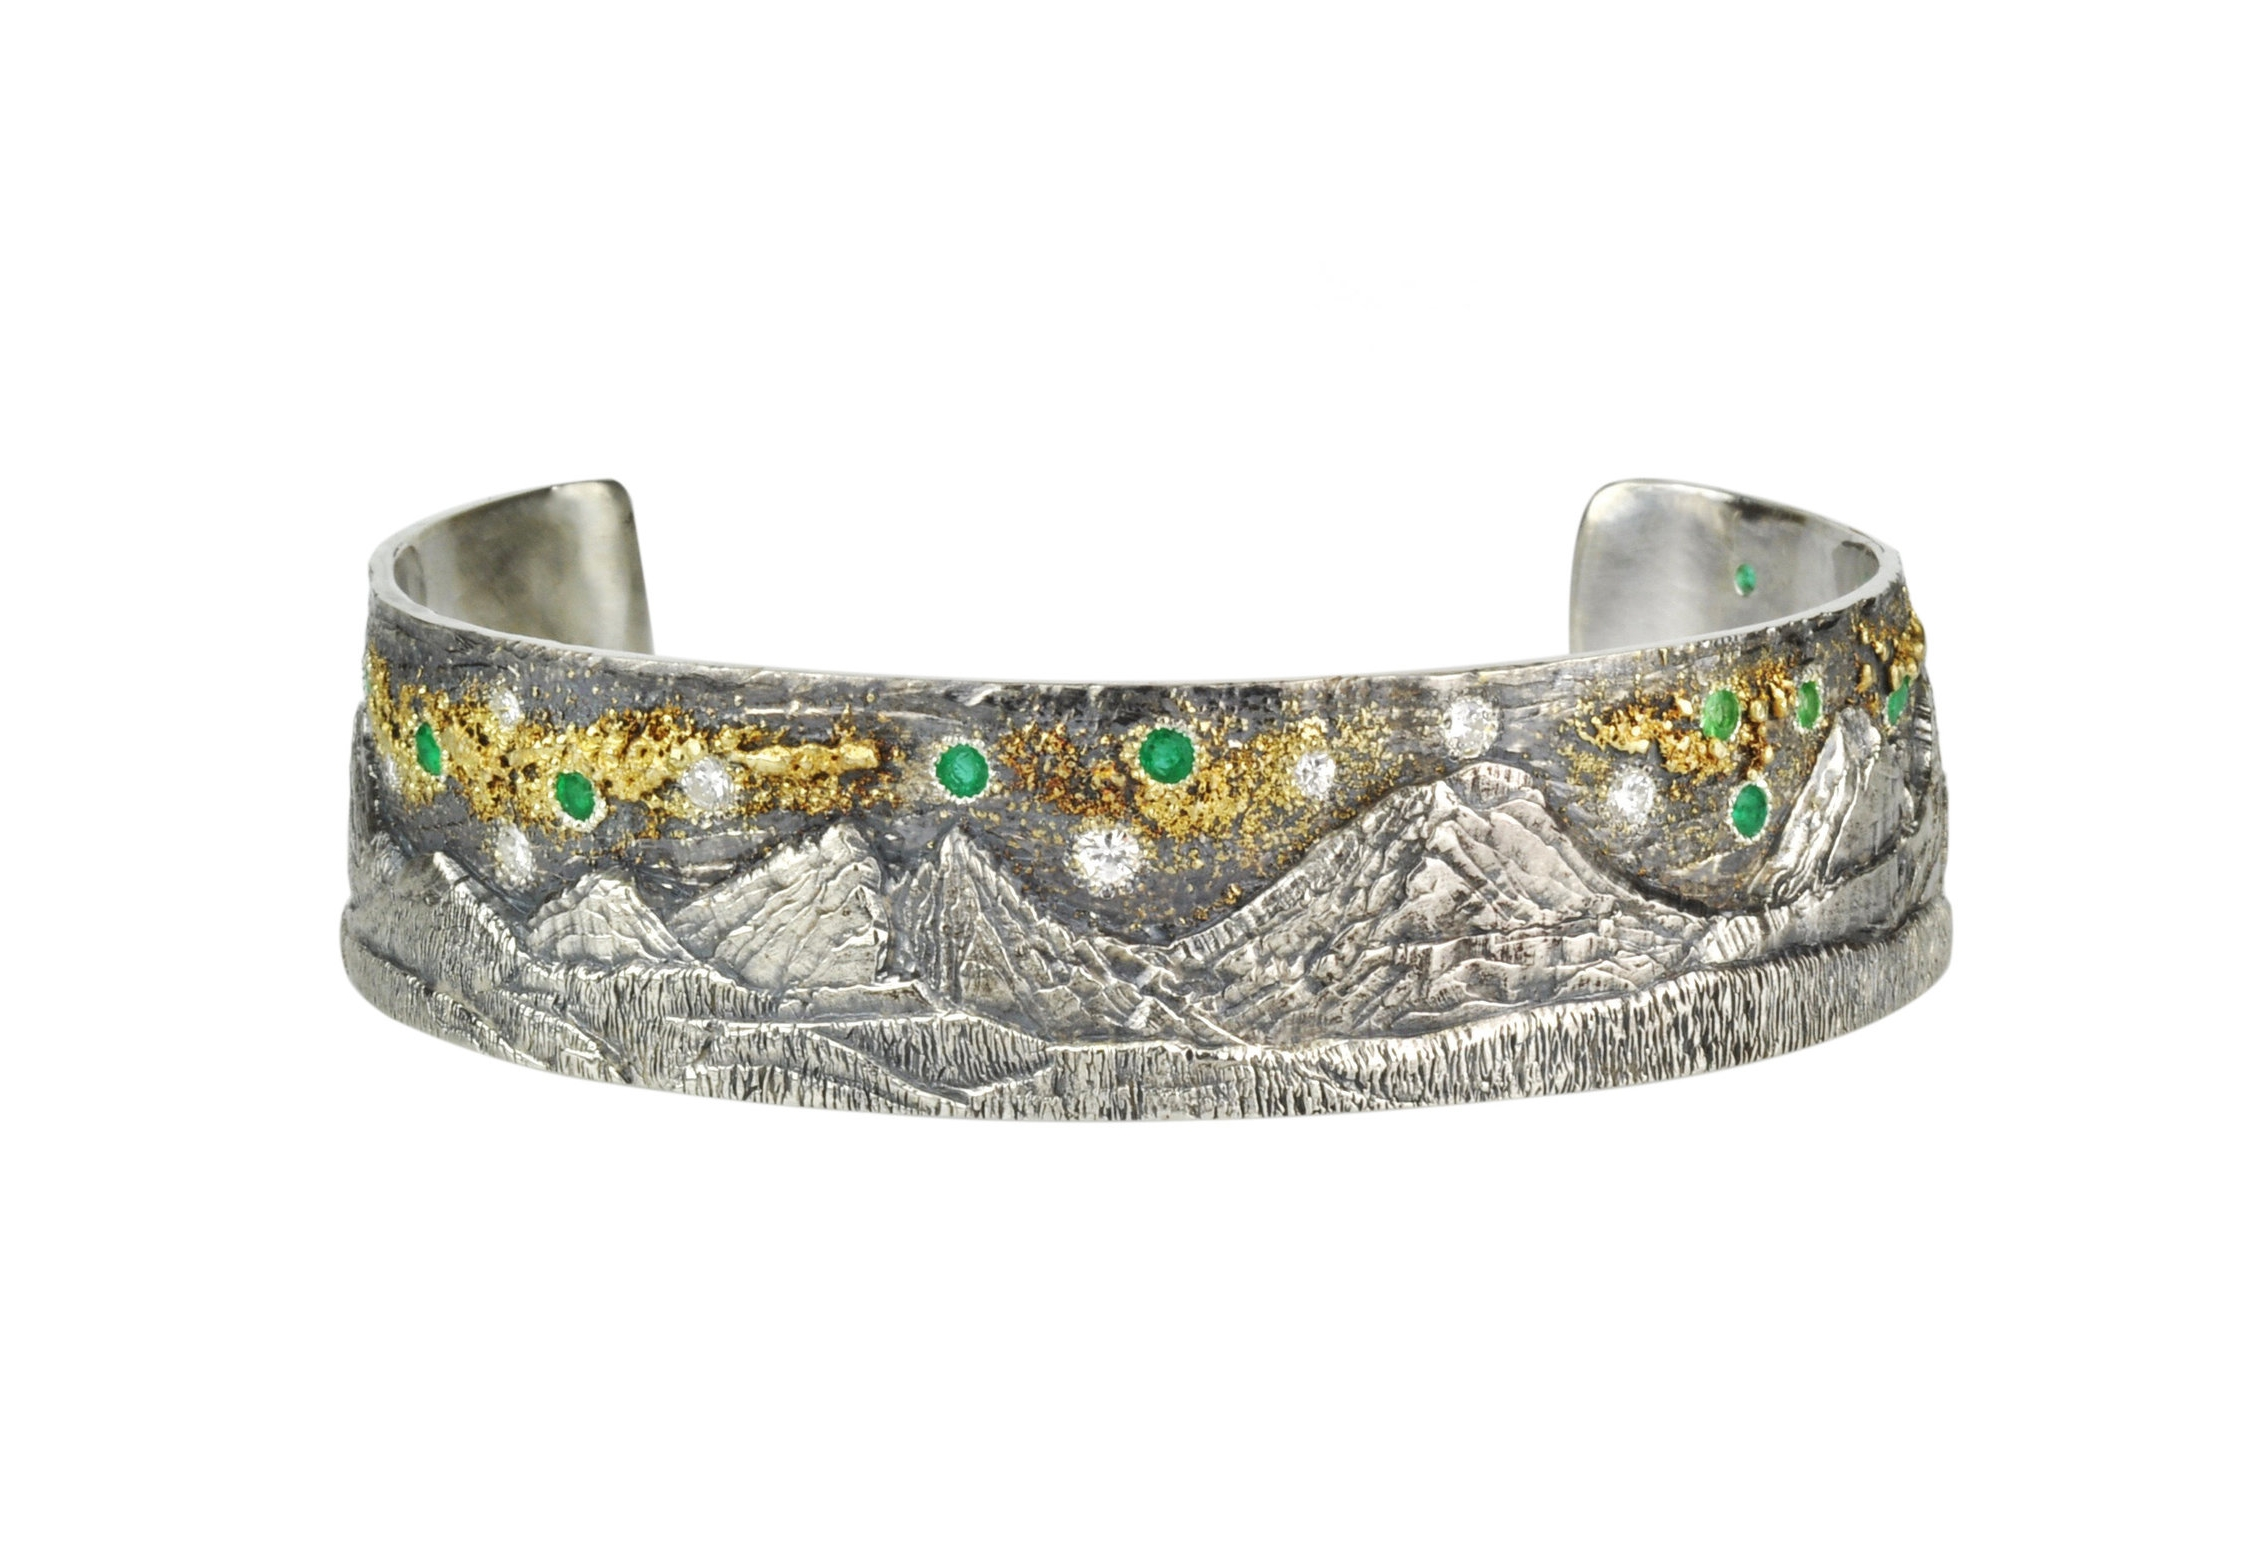 Cascades Mountain Cuff with 18k Gold Fusion